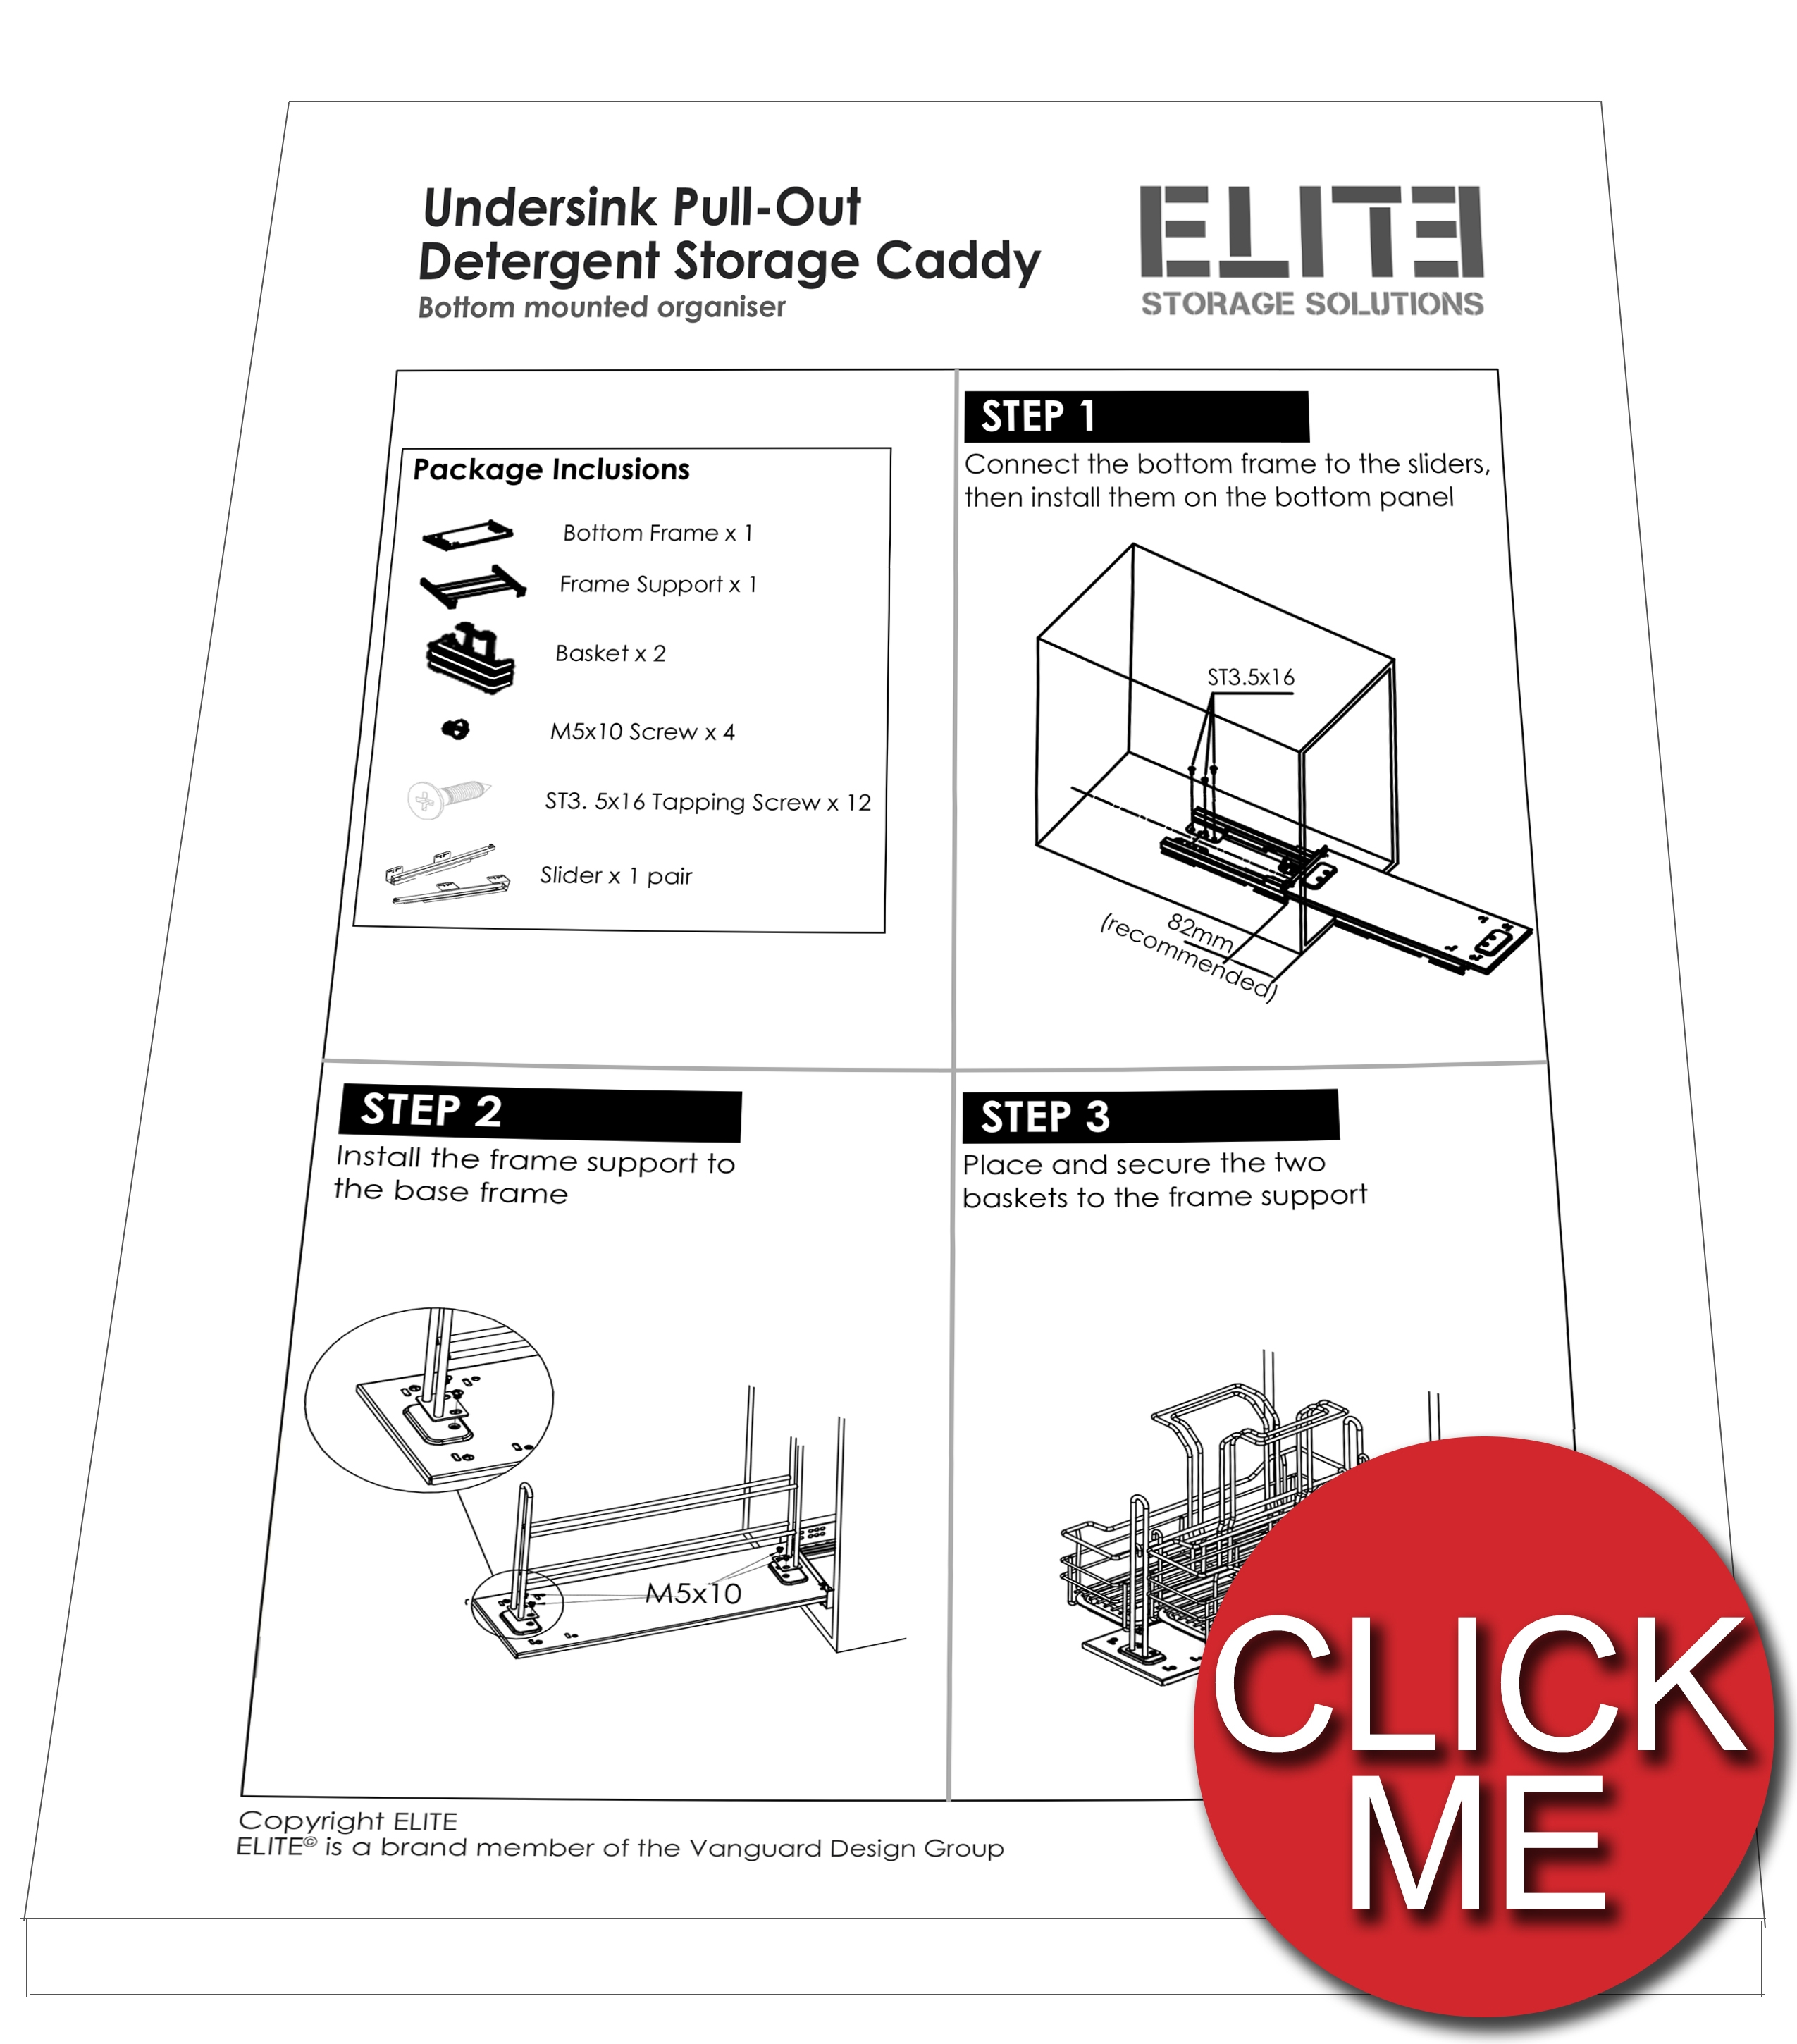 Elite-undersink-installation-manual